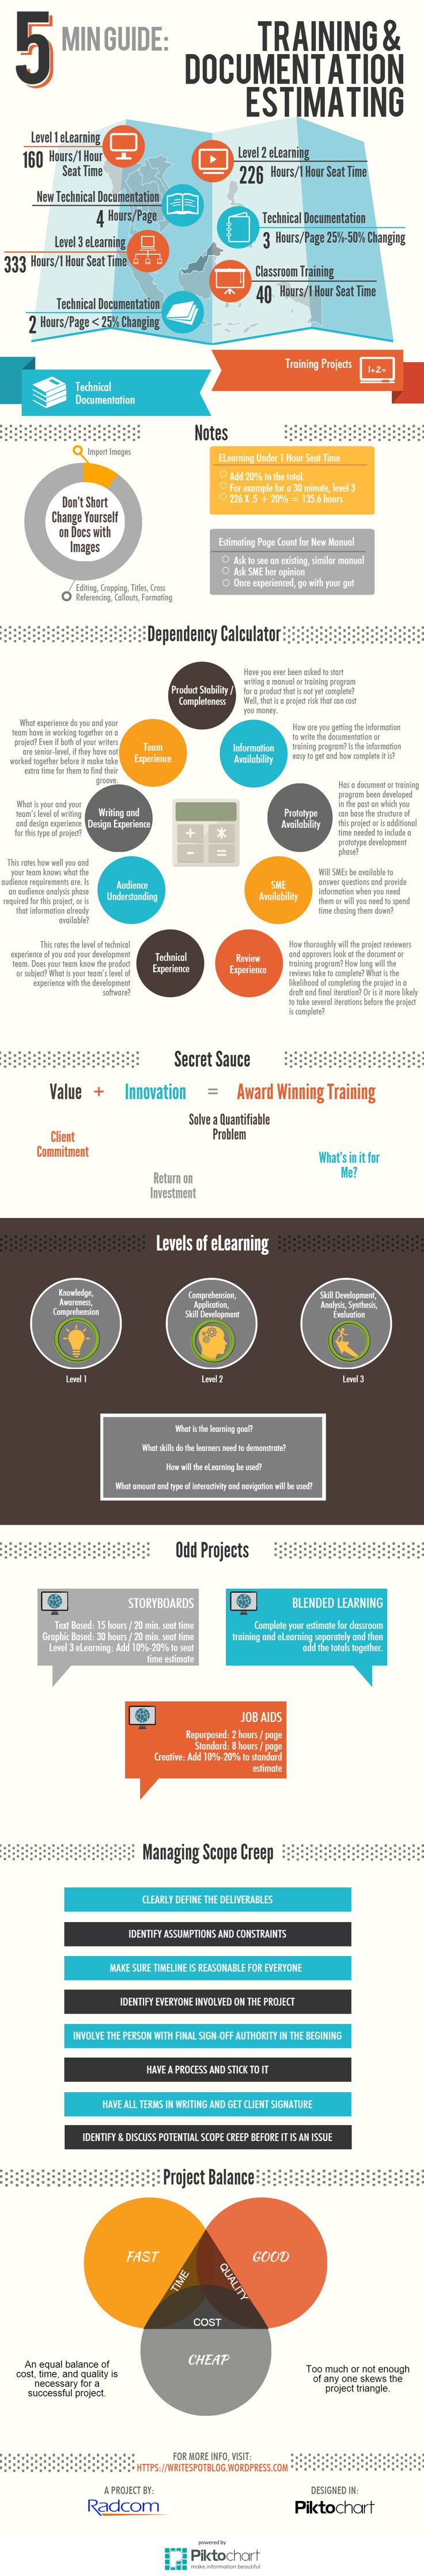 Estimating Training and Documentation Projects Infographic - http://elearninginfographics.com/estimating-training-documentation-projects-infographic/